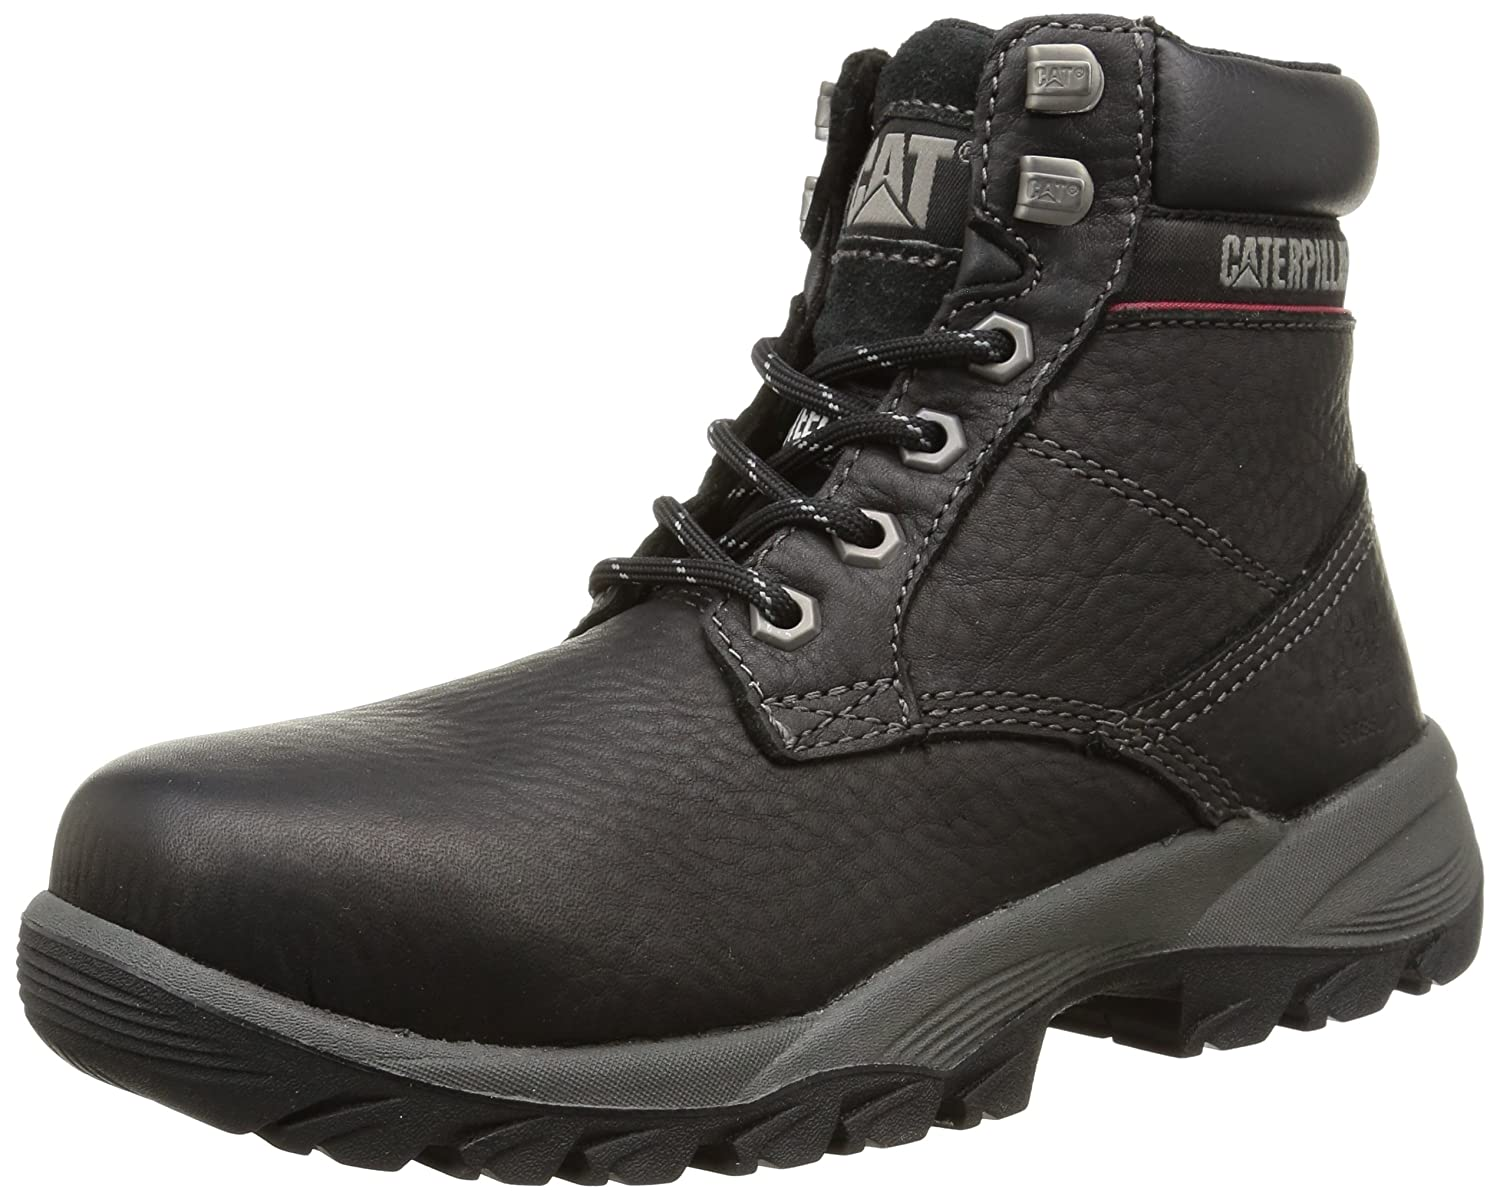 8f12e05fdcd Cat Dryverse, Women's Safety Boots